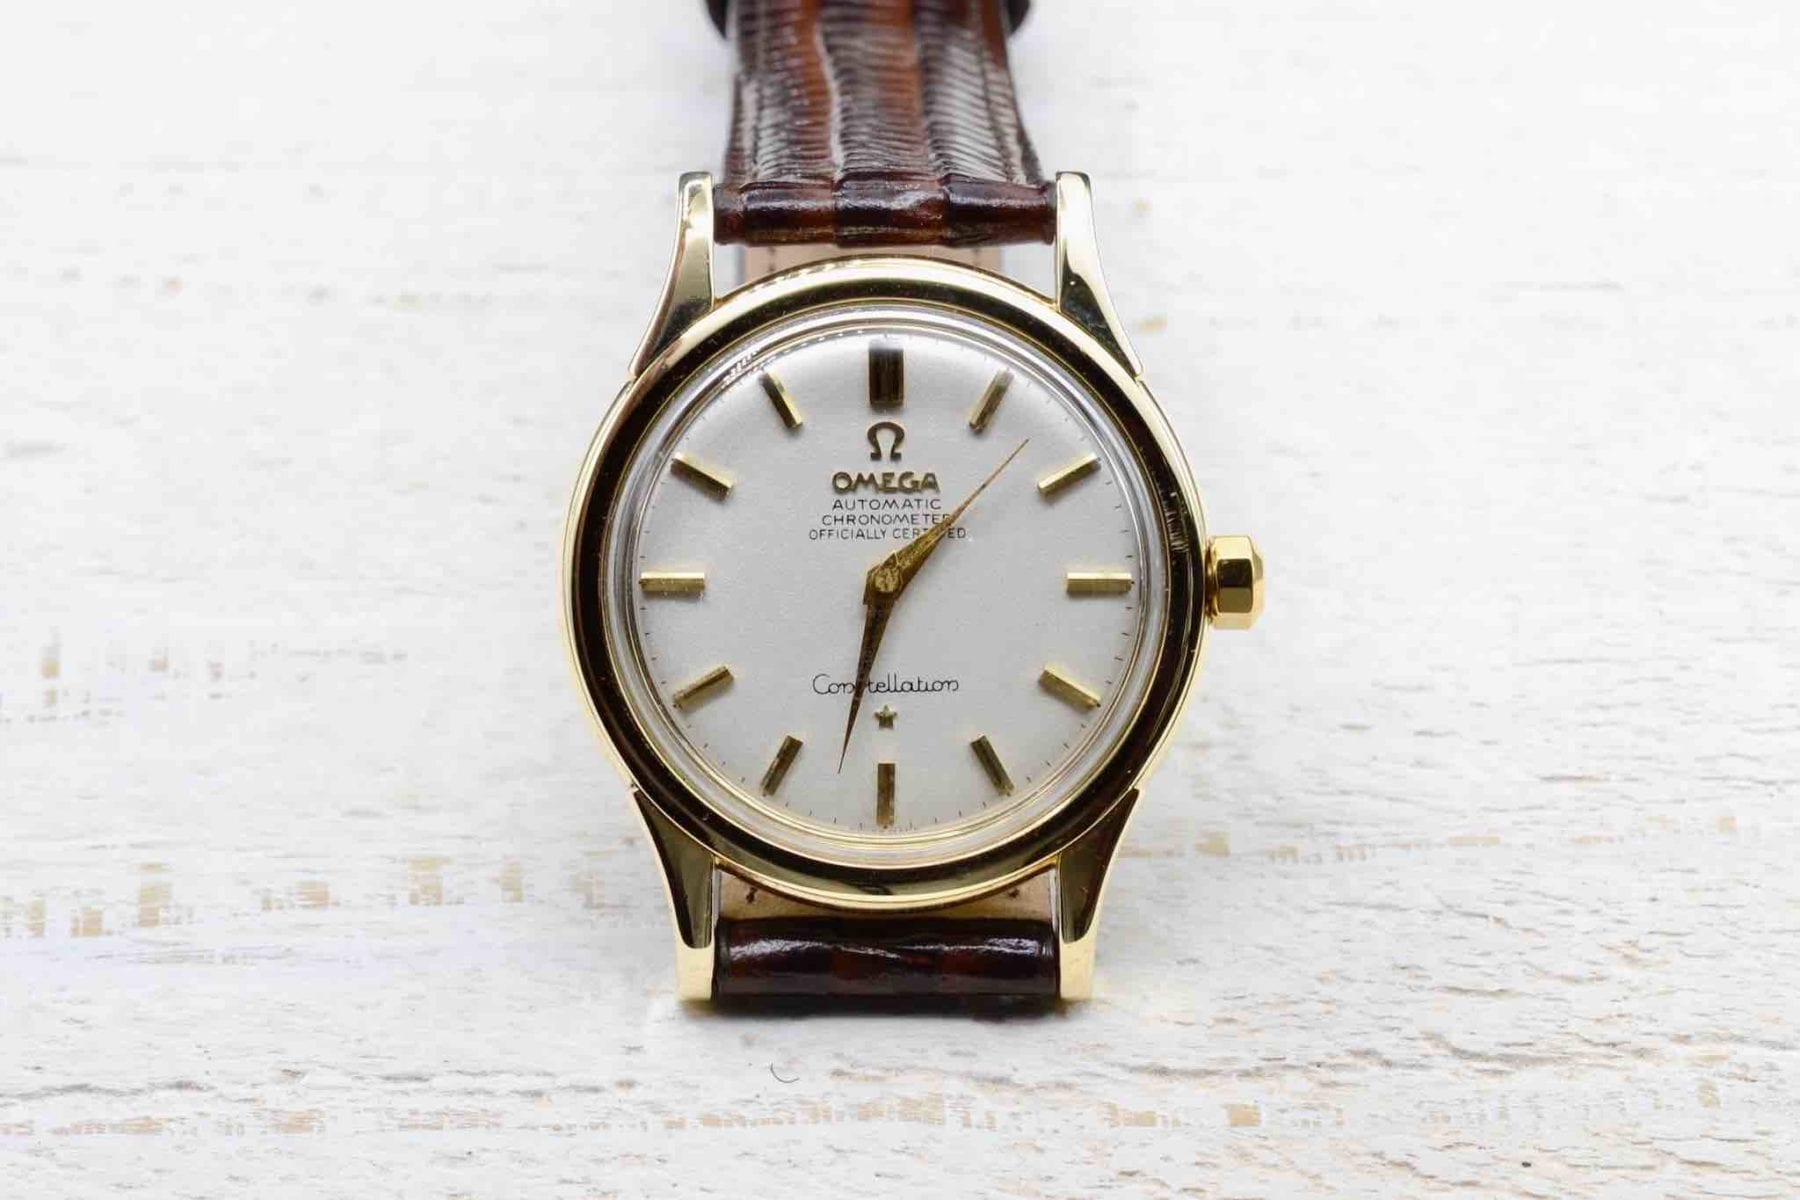 Omega Constellation watch in 14k yellow gold